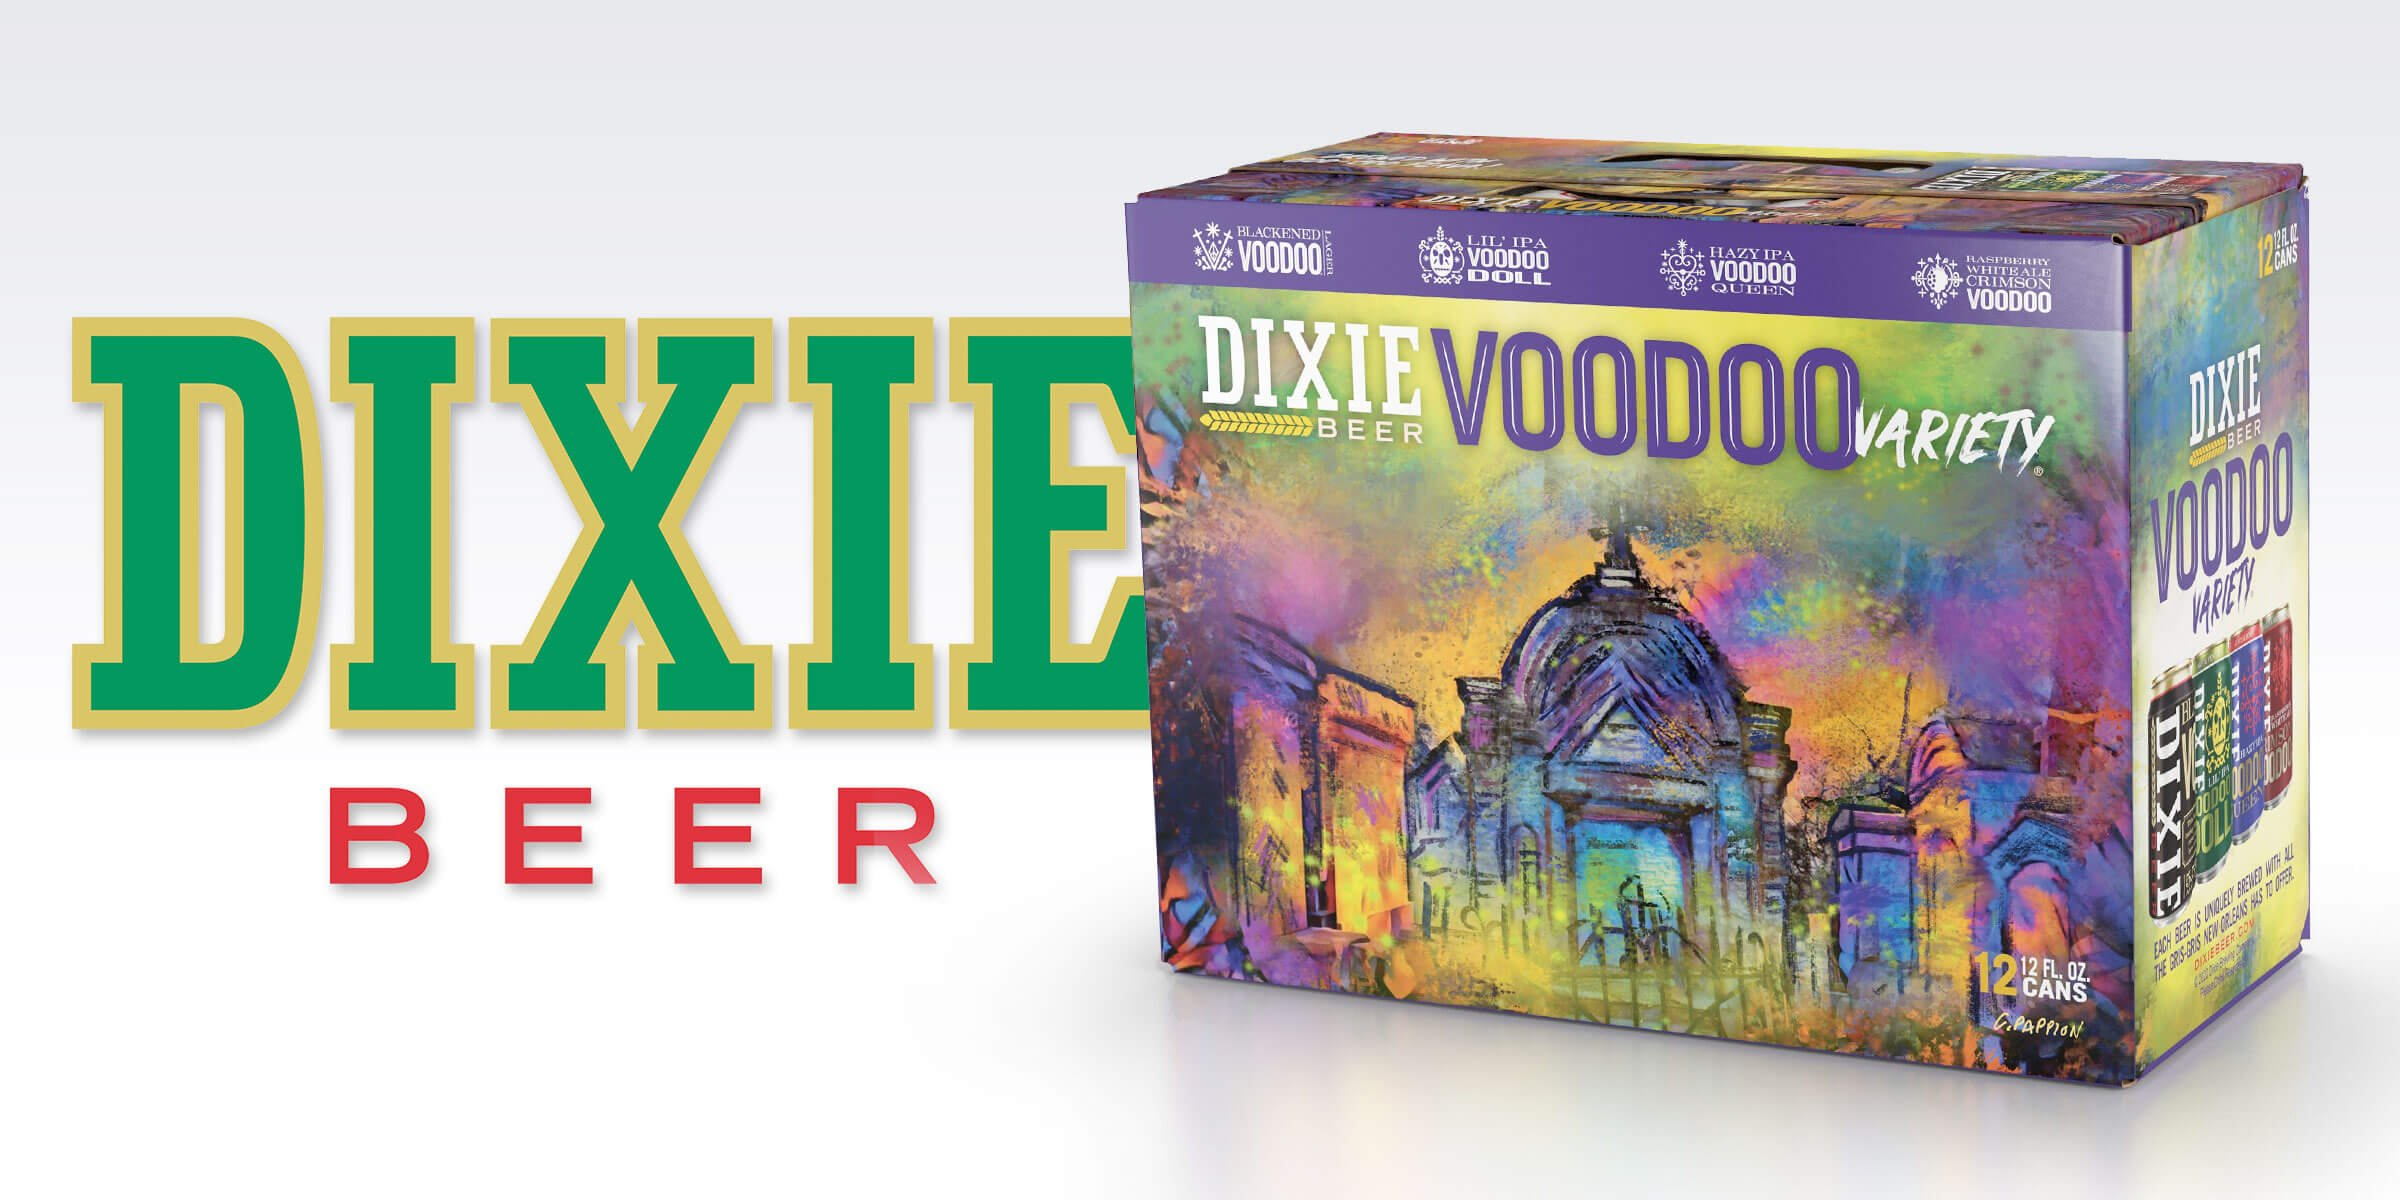 Dixie Brewing Company announced the release of their new Voodoo expansion series, including Crimson Voodoo, Voodoo Queen, Voodoo Doll, and Blackened Voodoo.